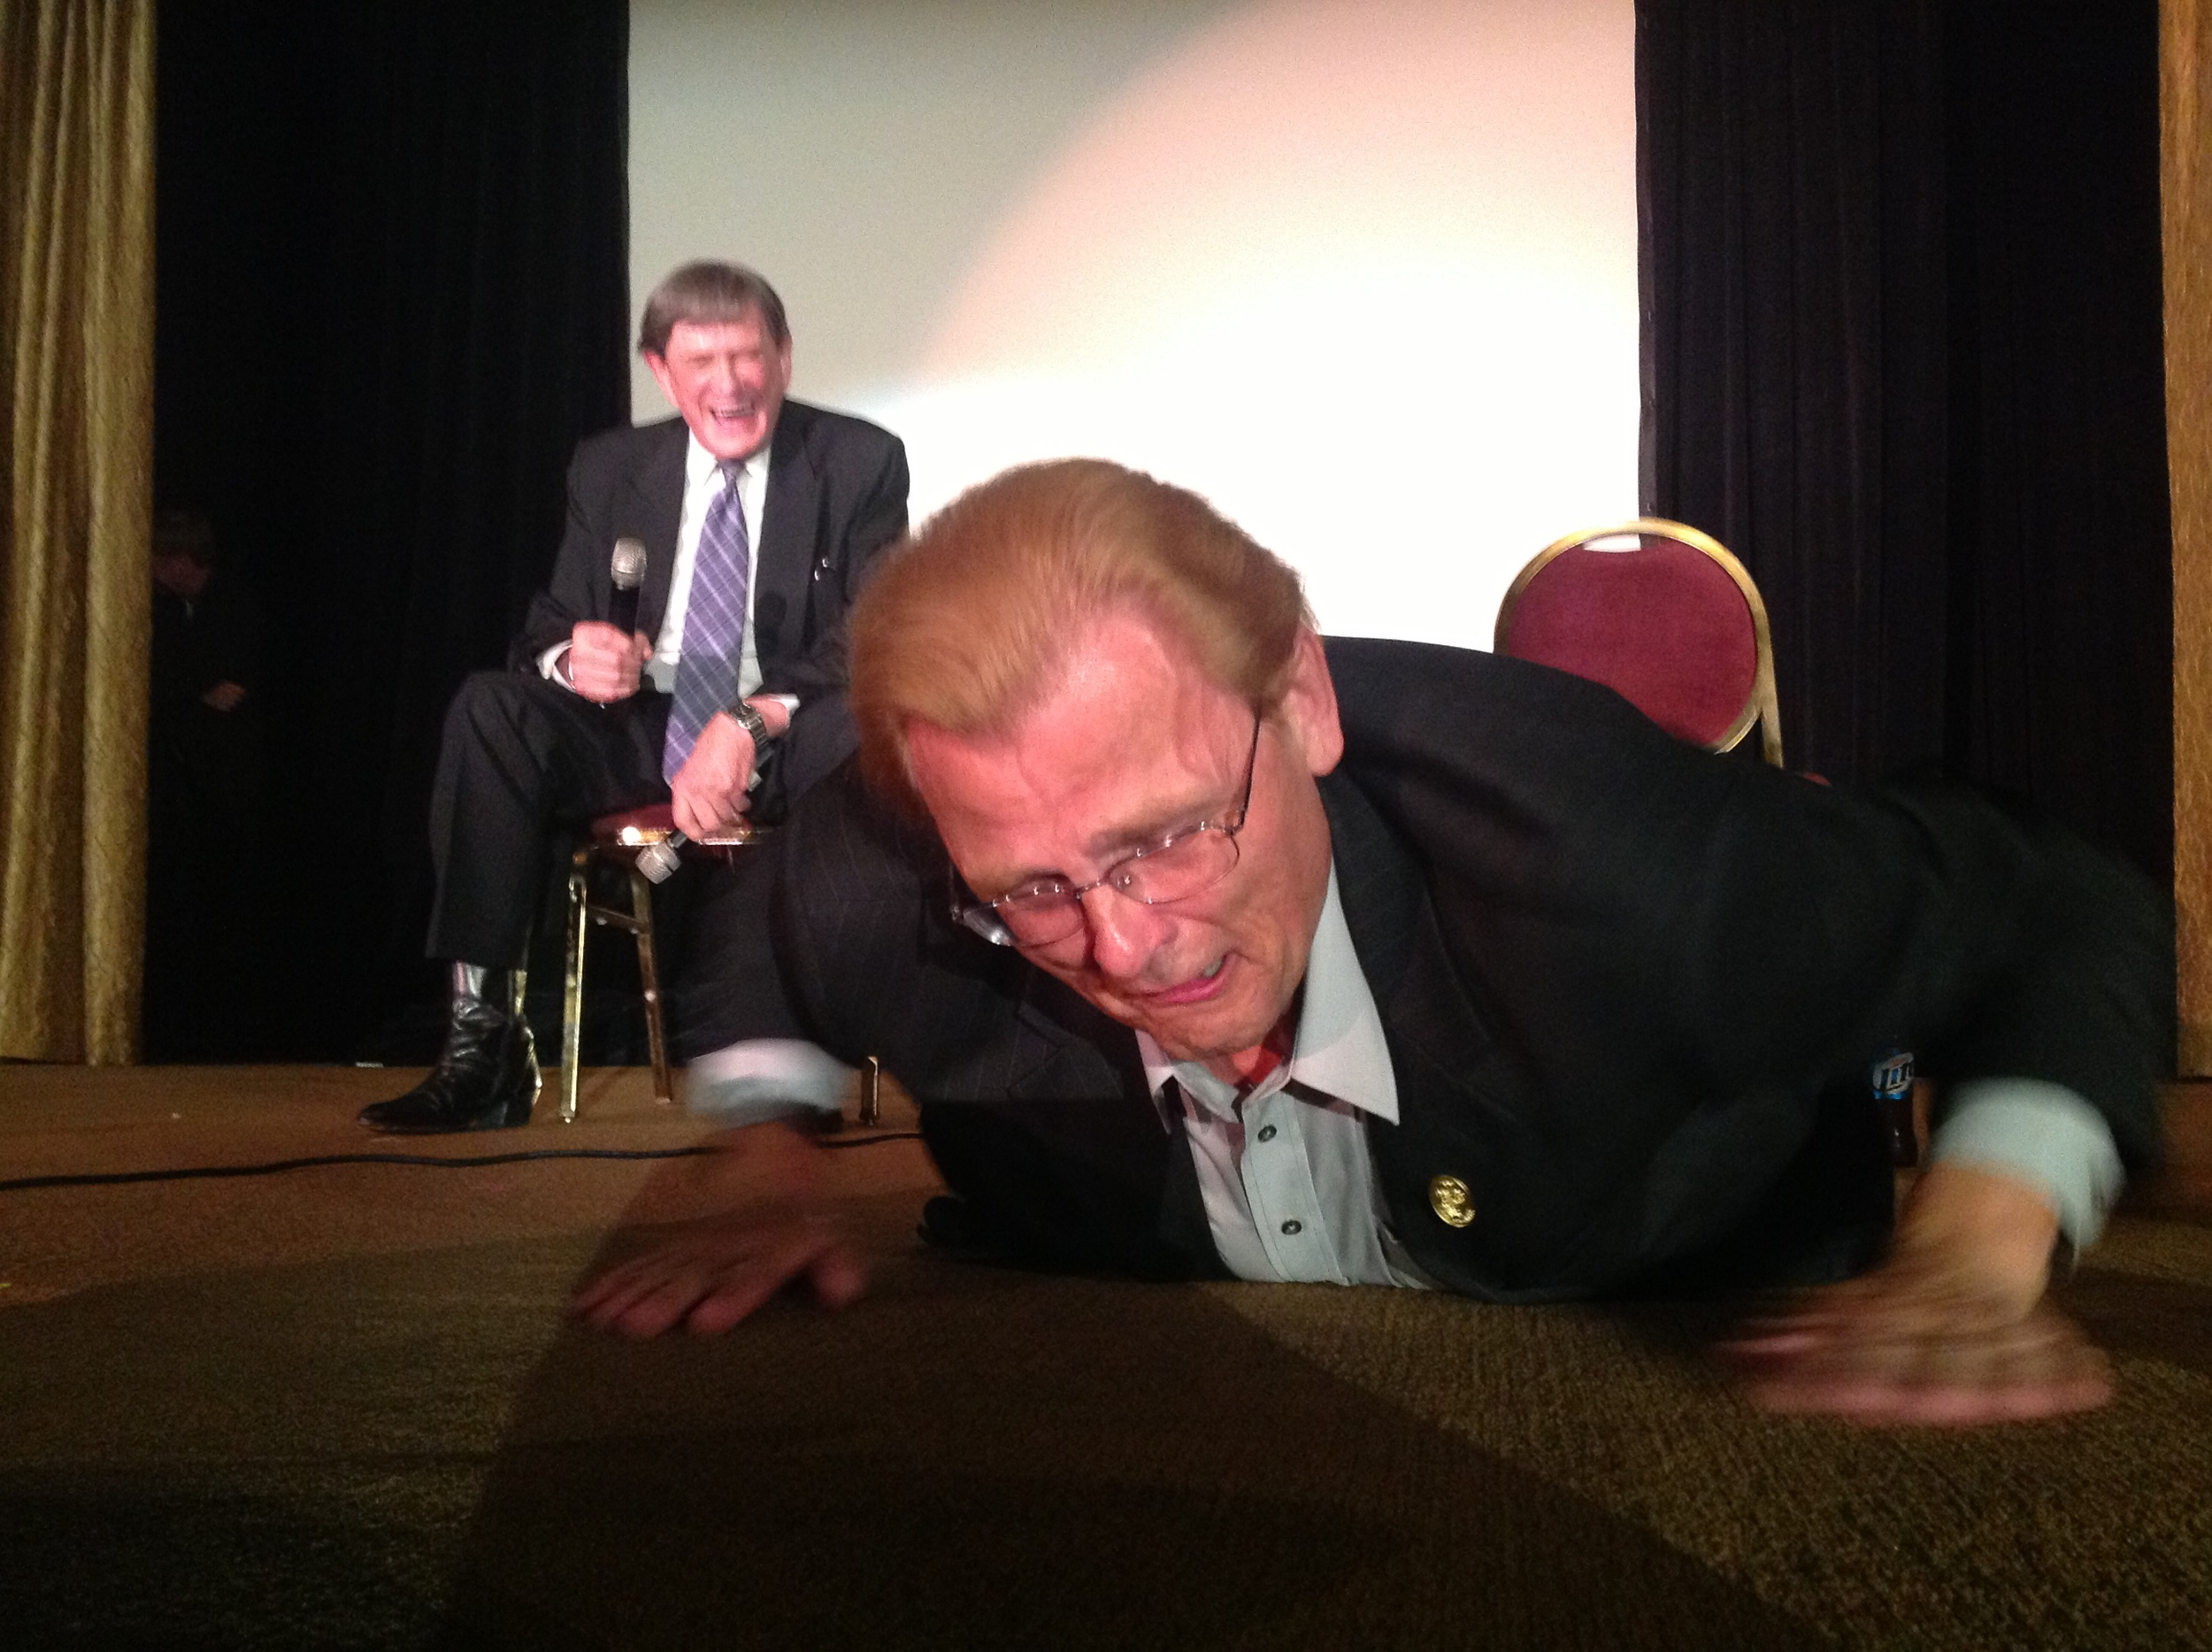 A Funny Moment at the 2013 T.A.O.M. convention